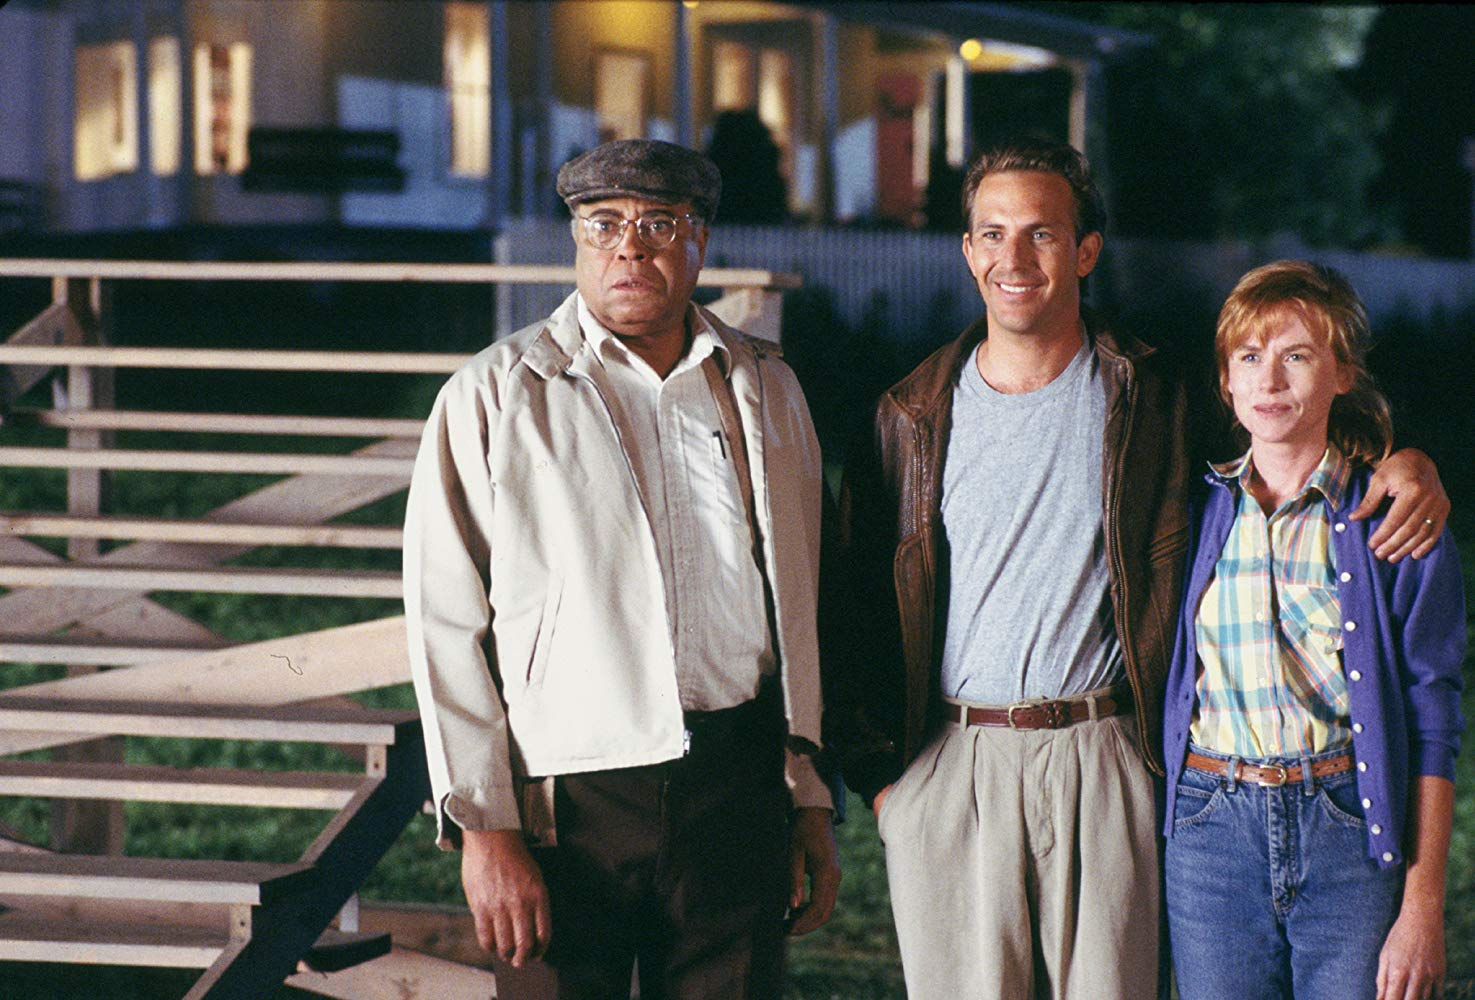 Field of Dreams 1989 19 22 Things You Might Not Have Realised About Field Of Dreams